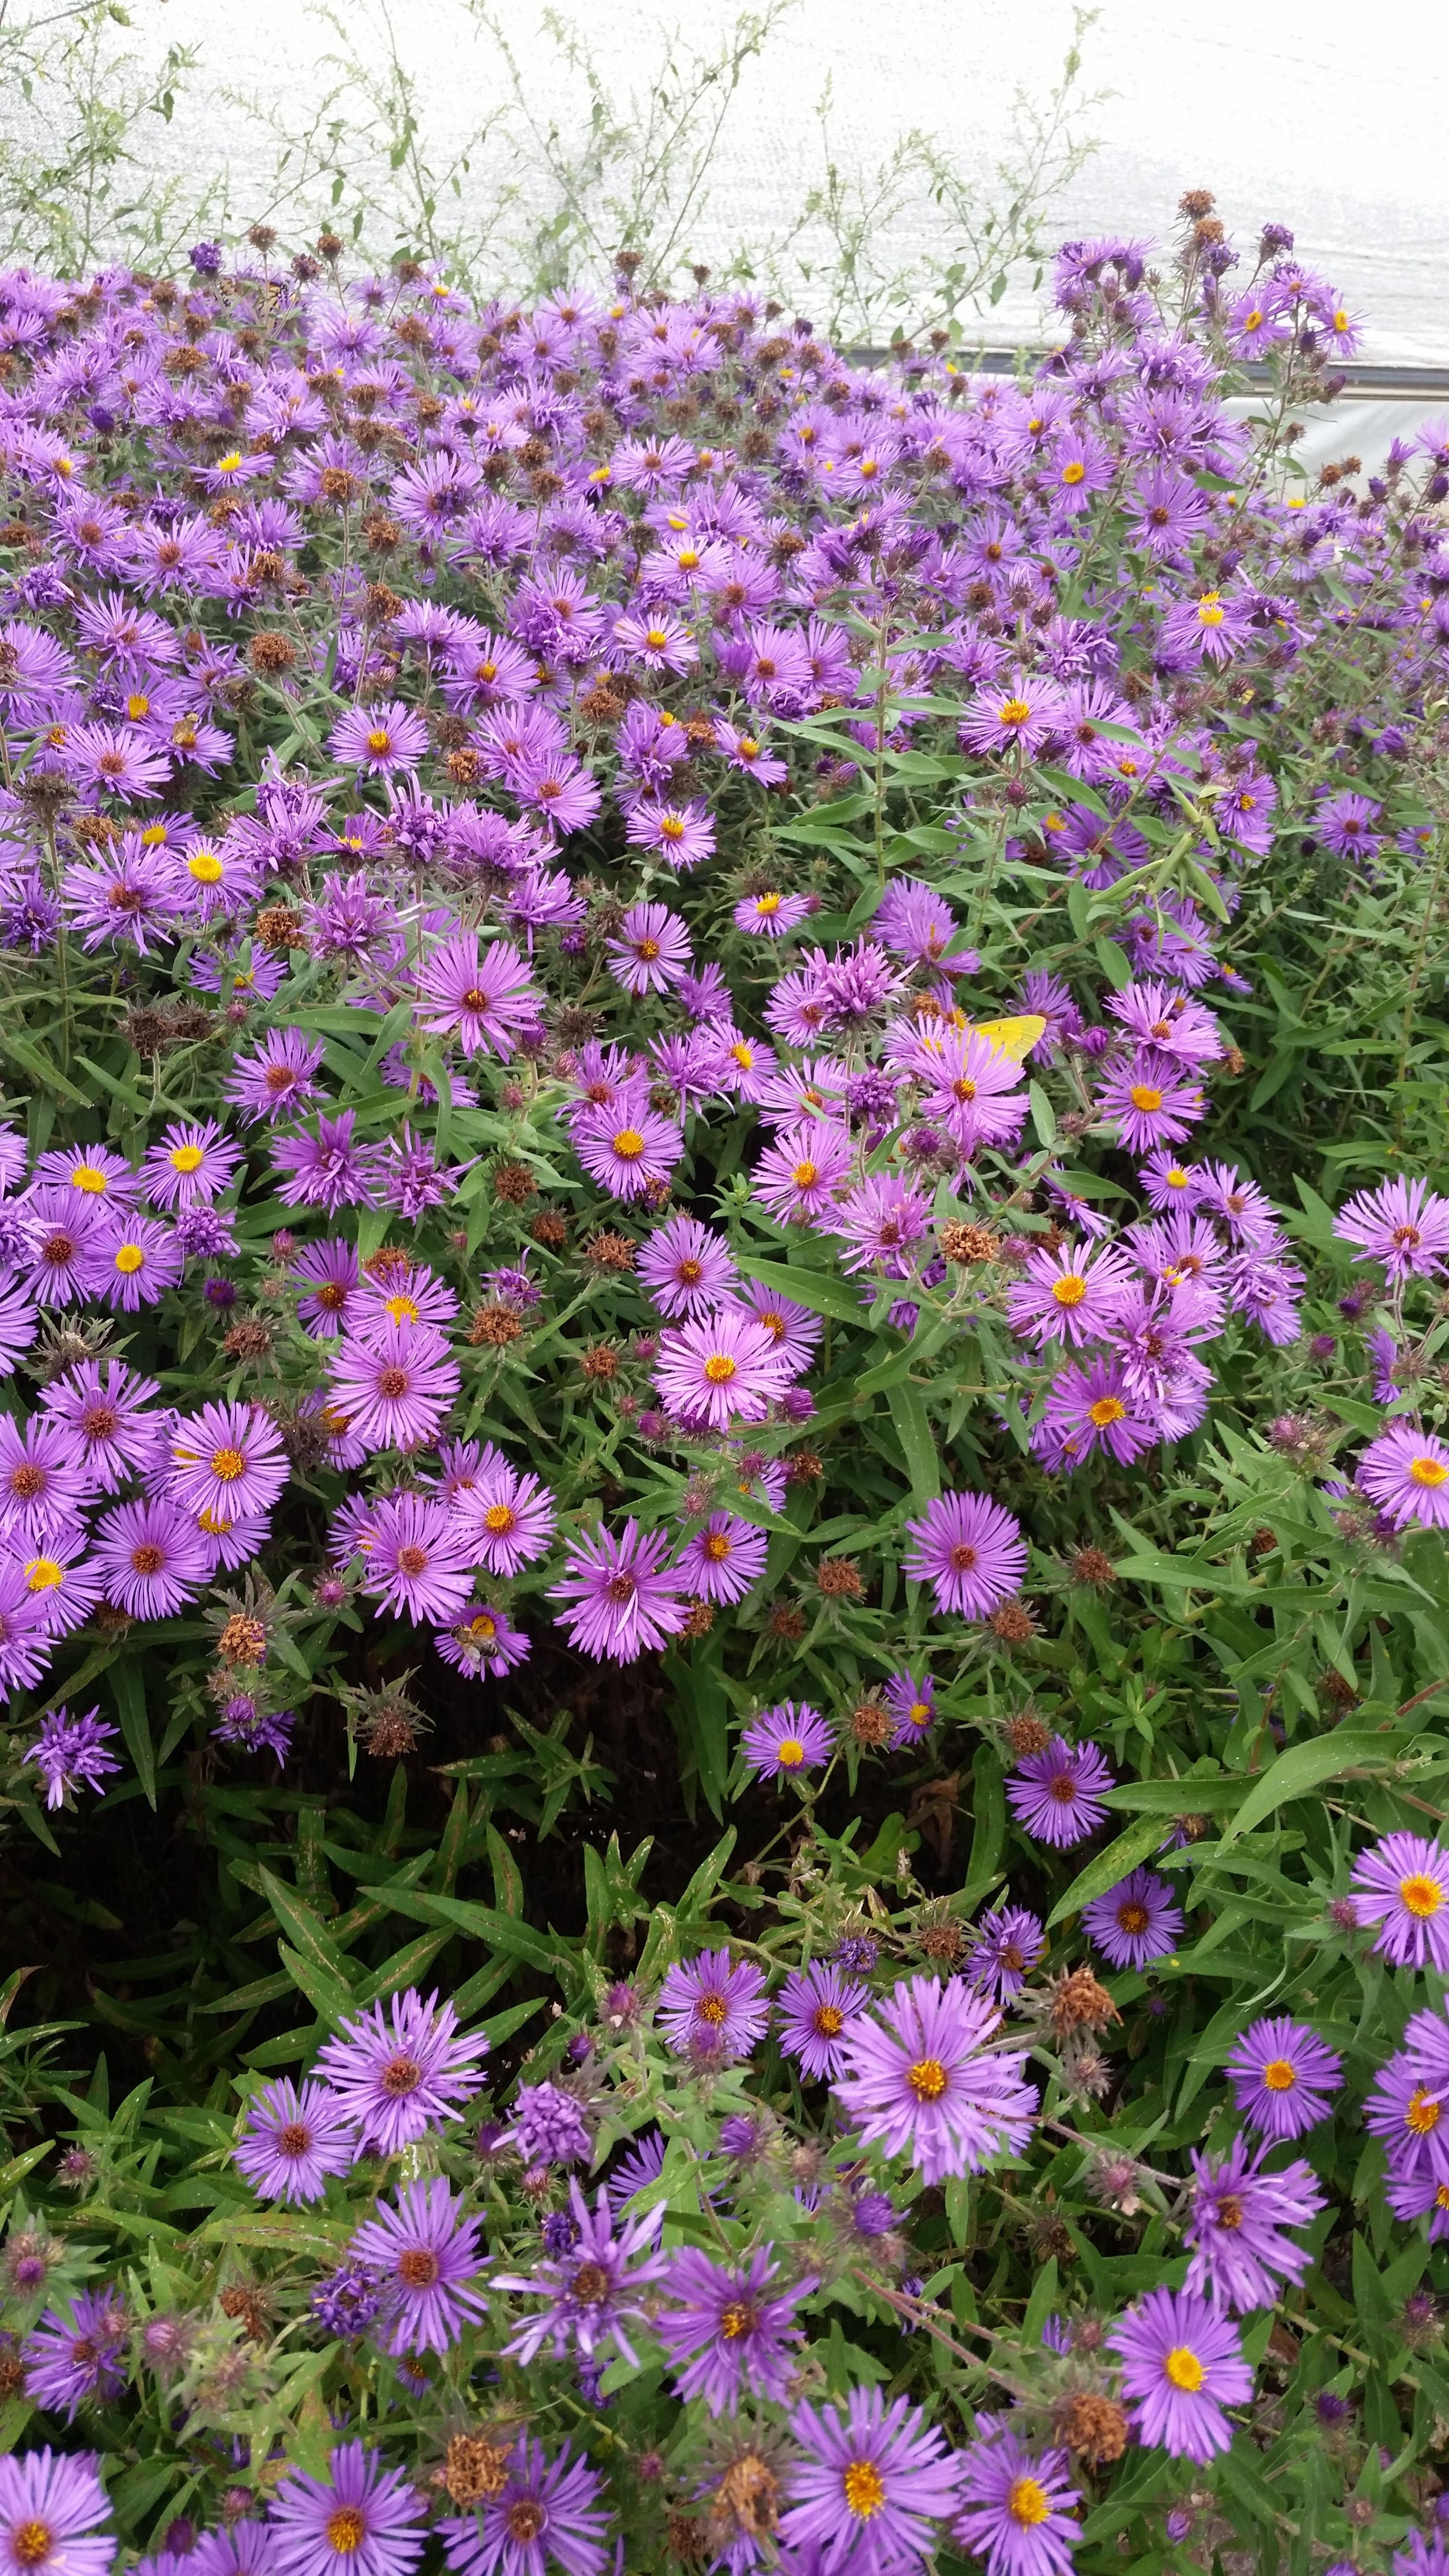 New England Aster Syphyotrichum Novae Angliae Is A Tall Clump Forming Perennial Native This Tall Up To 6 Feet Aster Flowers Perennials Plants Perennials